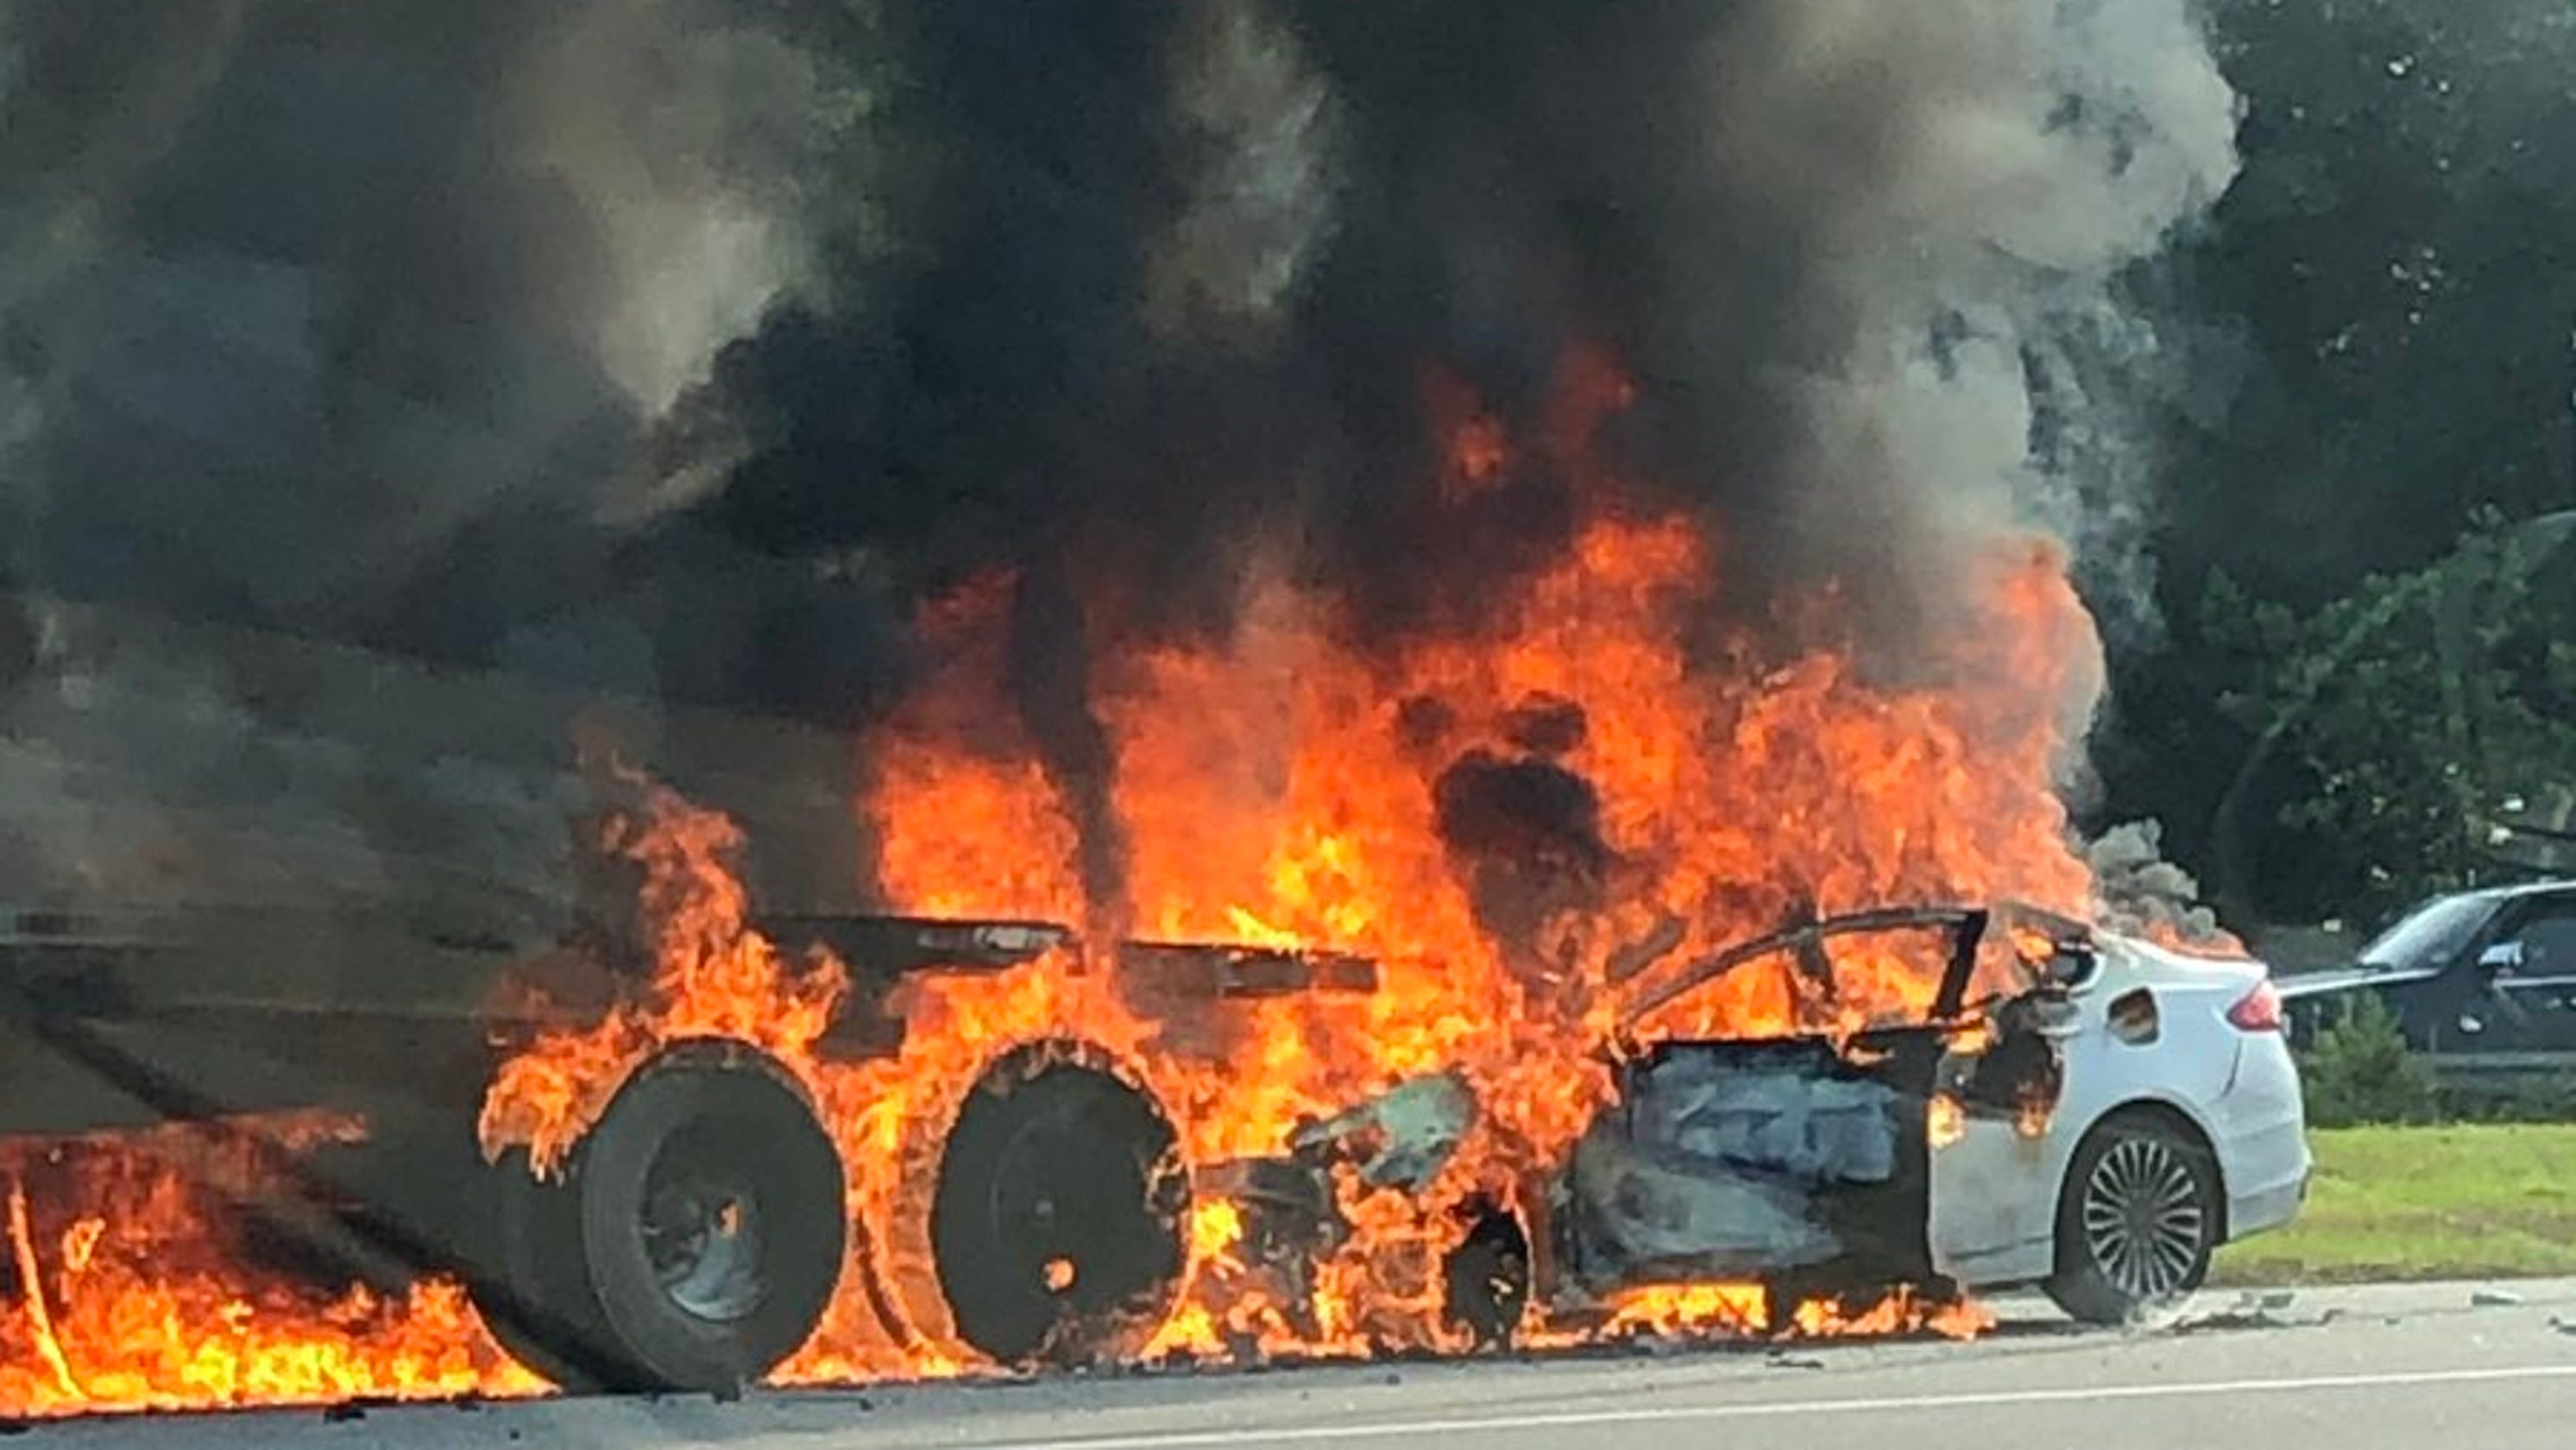 Route 80 crash: Man killed in fiery crash in Parsippany